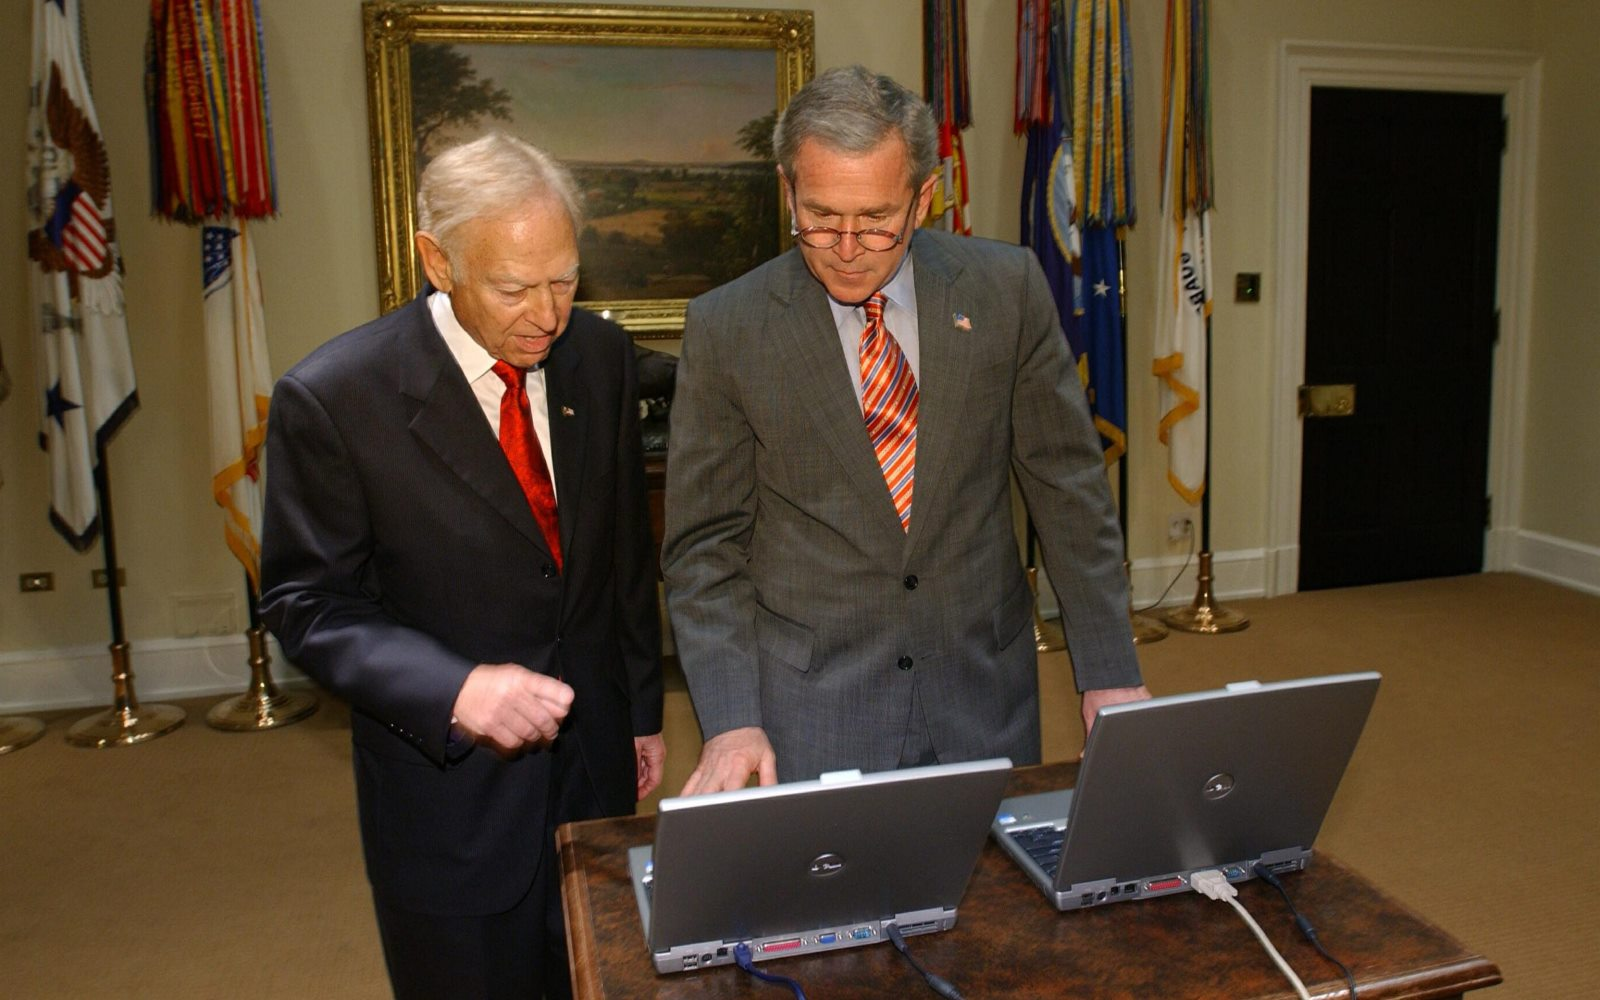 Stan Lipsey, alongside President George W. Bush in the White House's Roosevelt Room, remotely initiating The Buffalo News' new press in 2004. (Bill Wippert/News file photo)